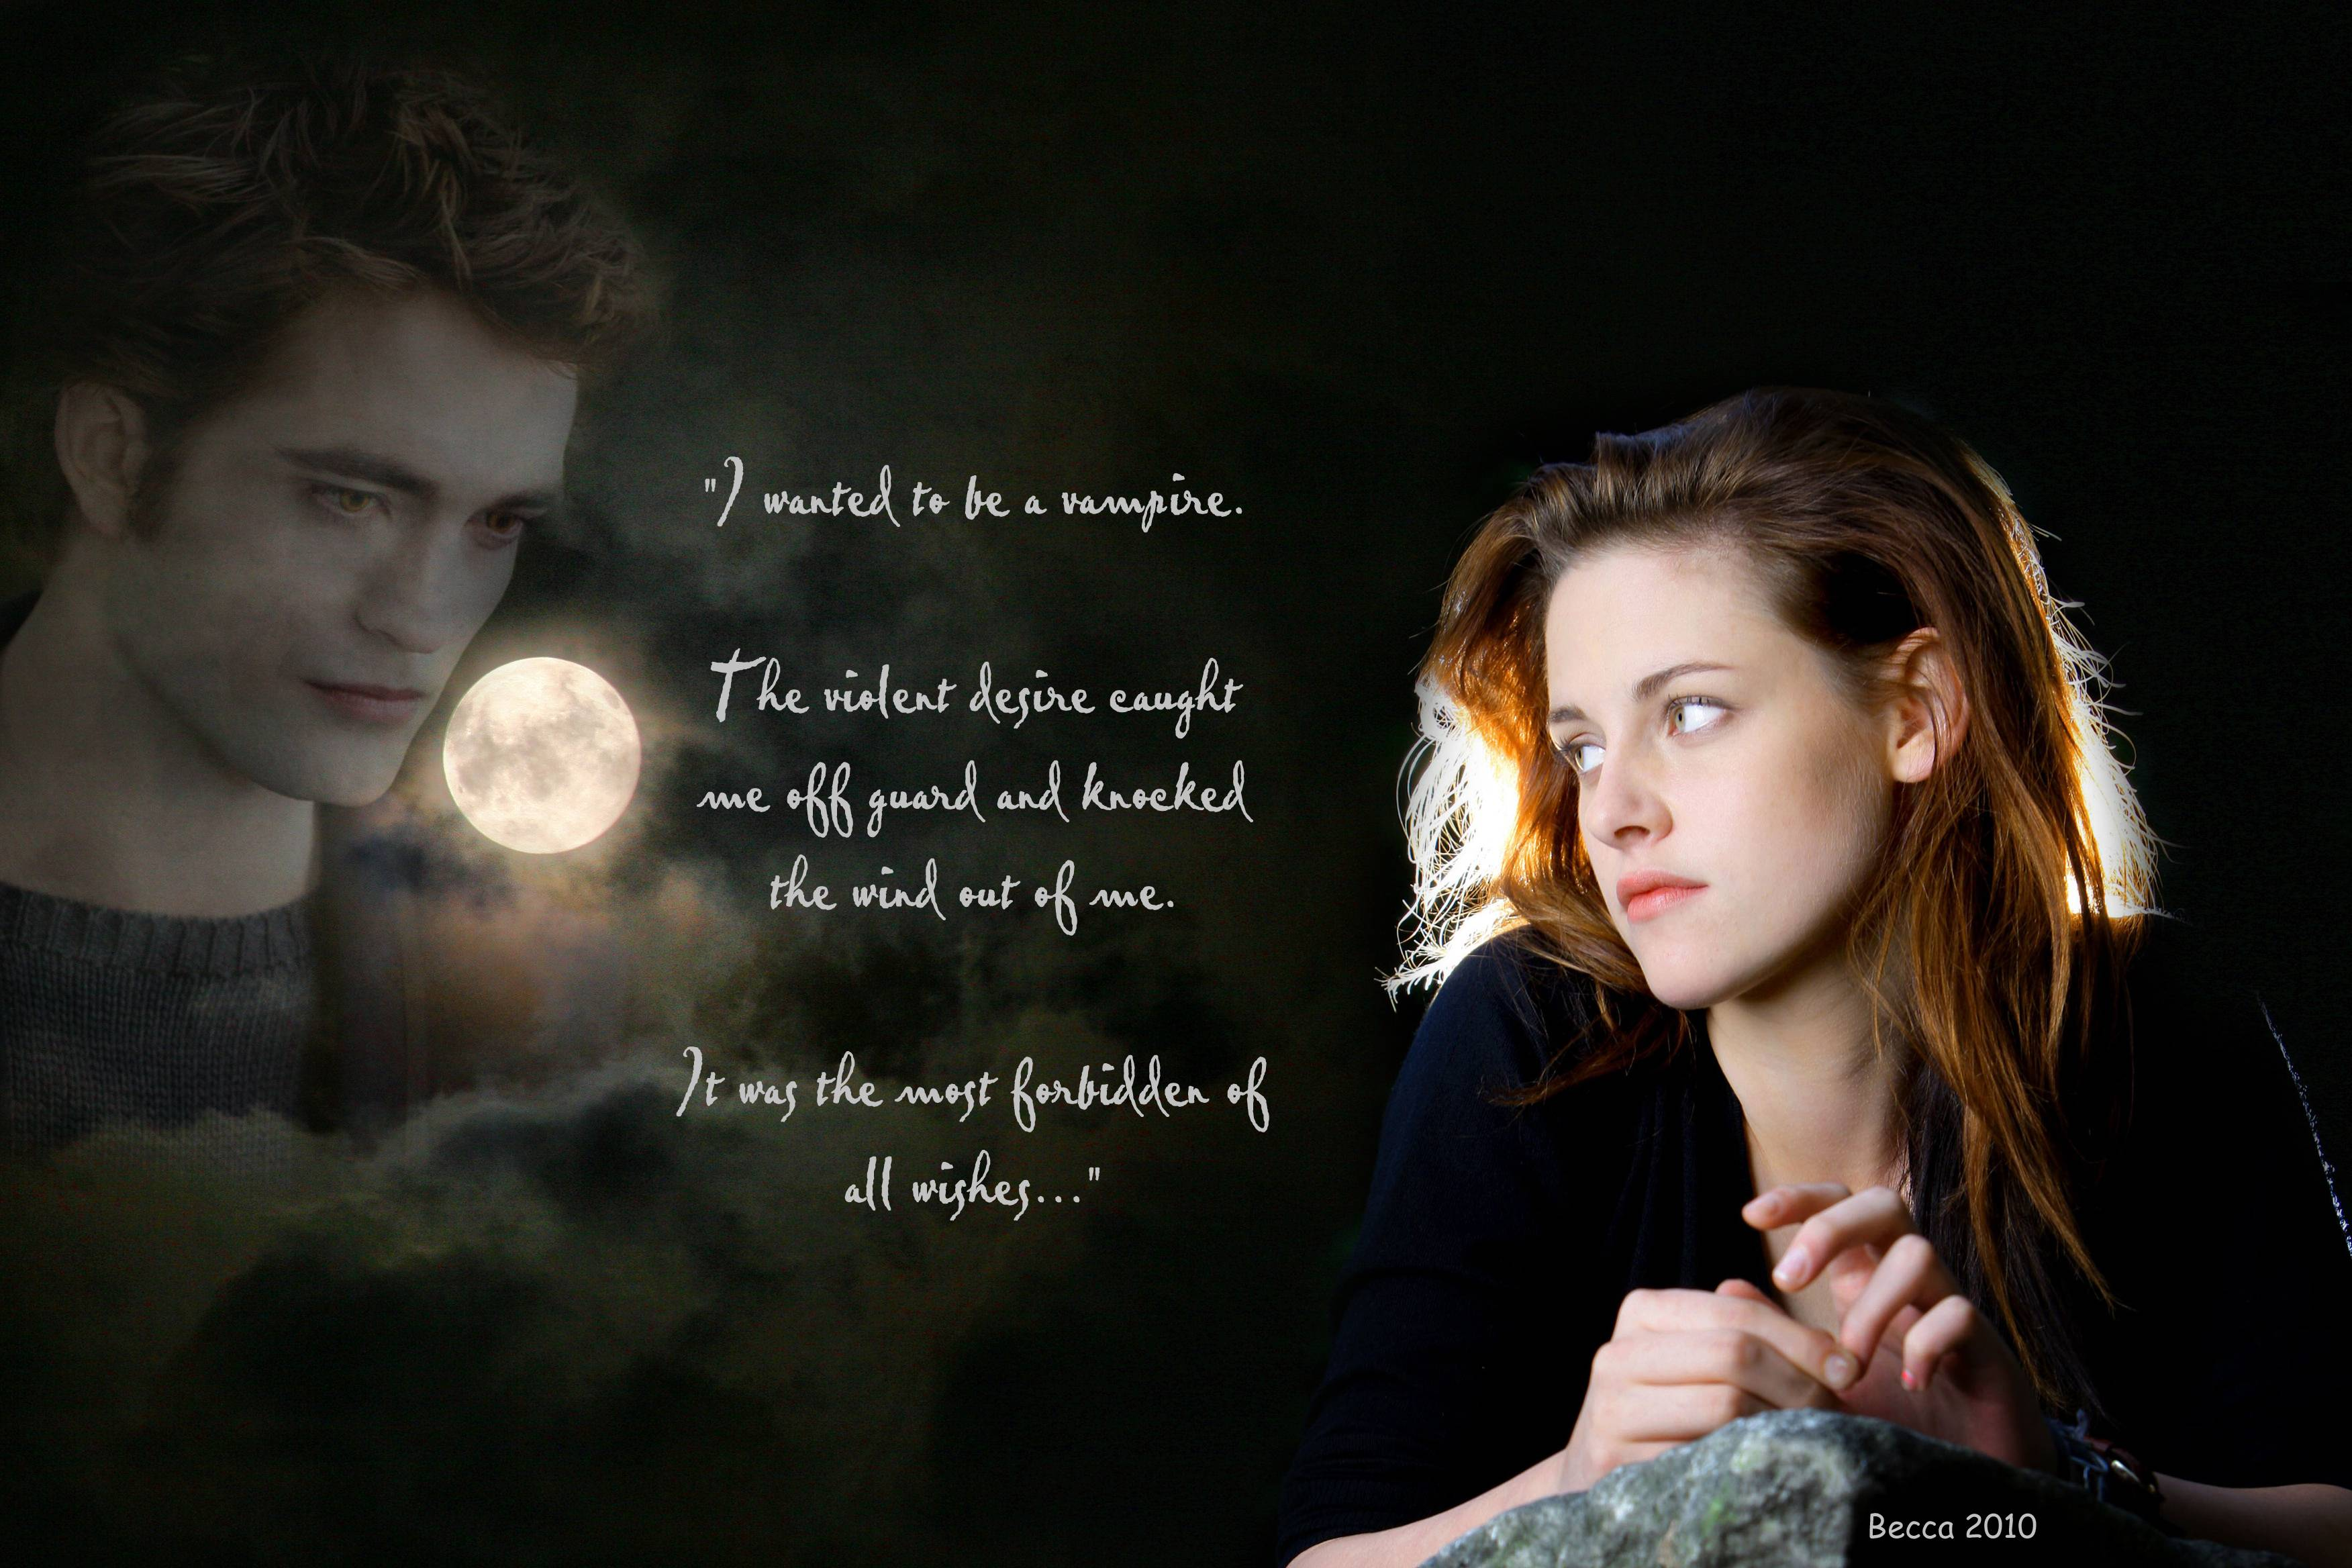 Vampire Love Hd Wallpaper : Vampire Wallpapers Desktop - Wallpaper cave